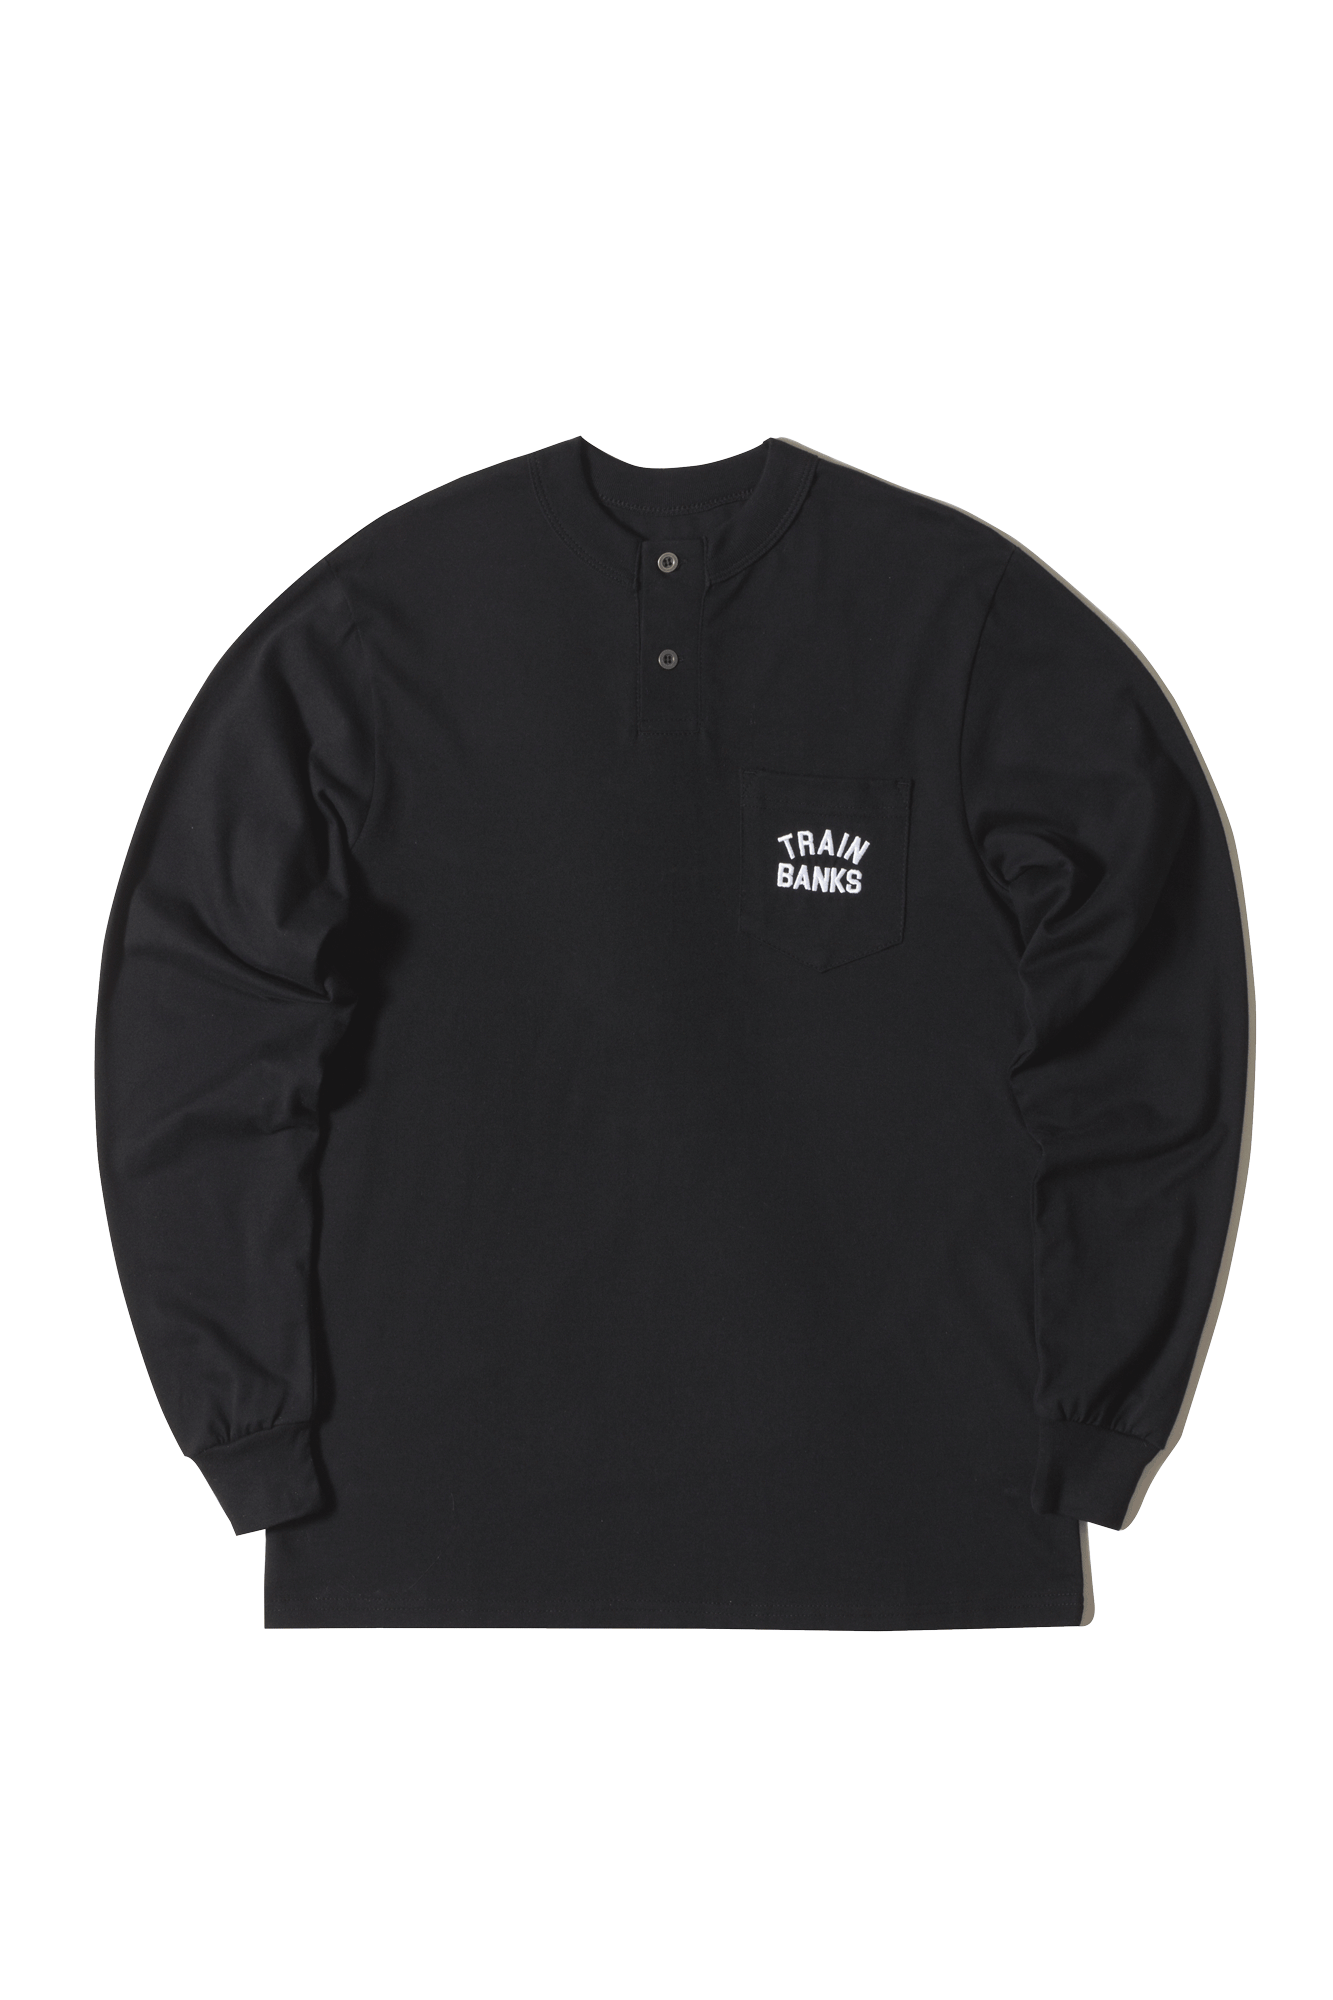 Long sleeve T-Shirts Polar Train Banks Henley Longsleeve Black - One Block Down